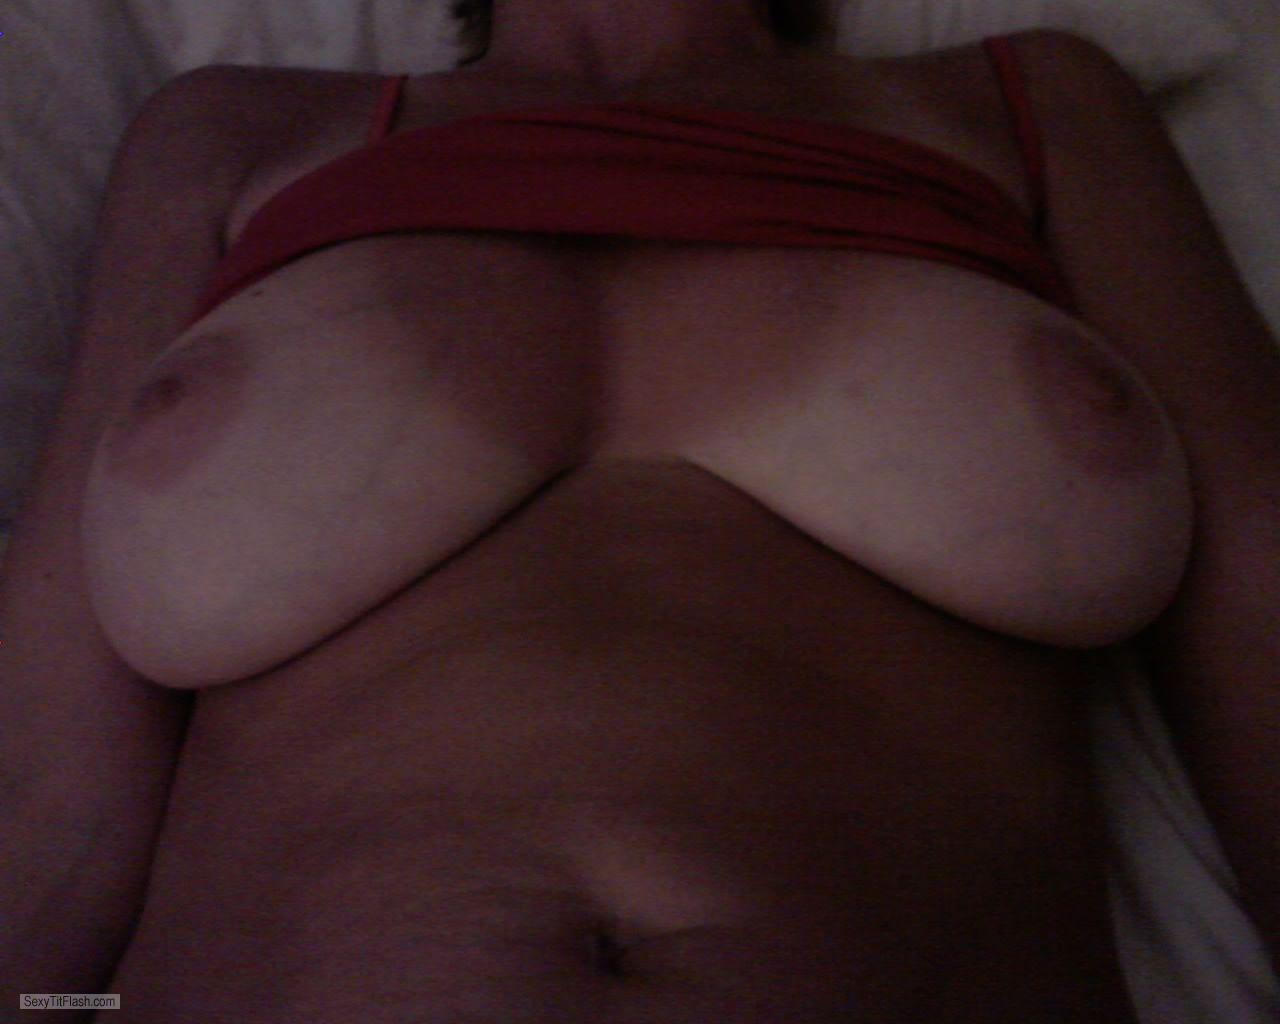 Tit Flash: Wife's Very Big Tits With Strong Tanlines - Hot Wife 34DD from United States